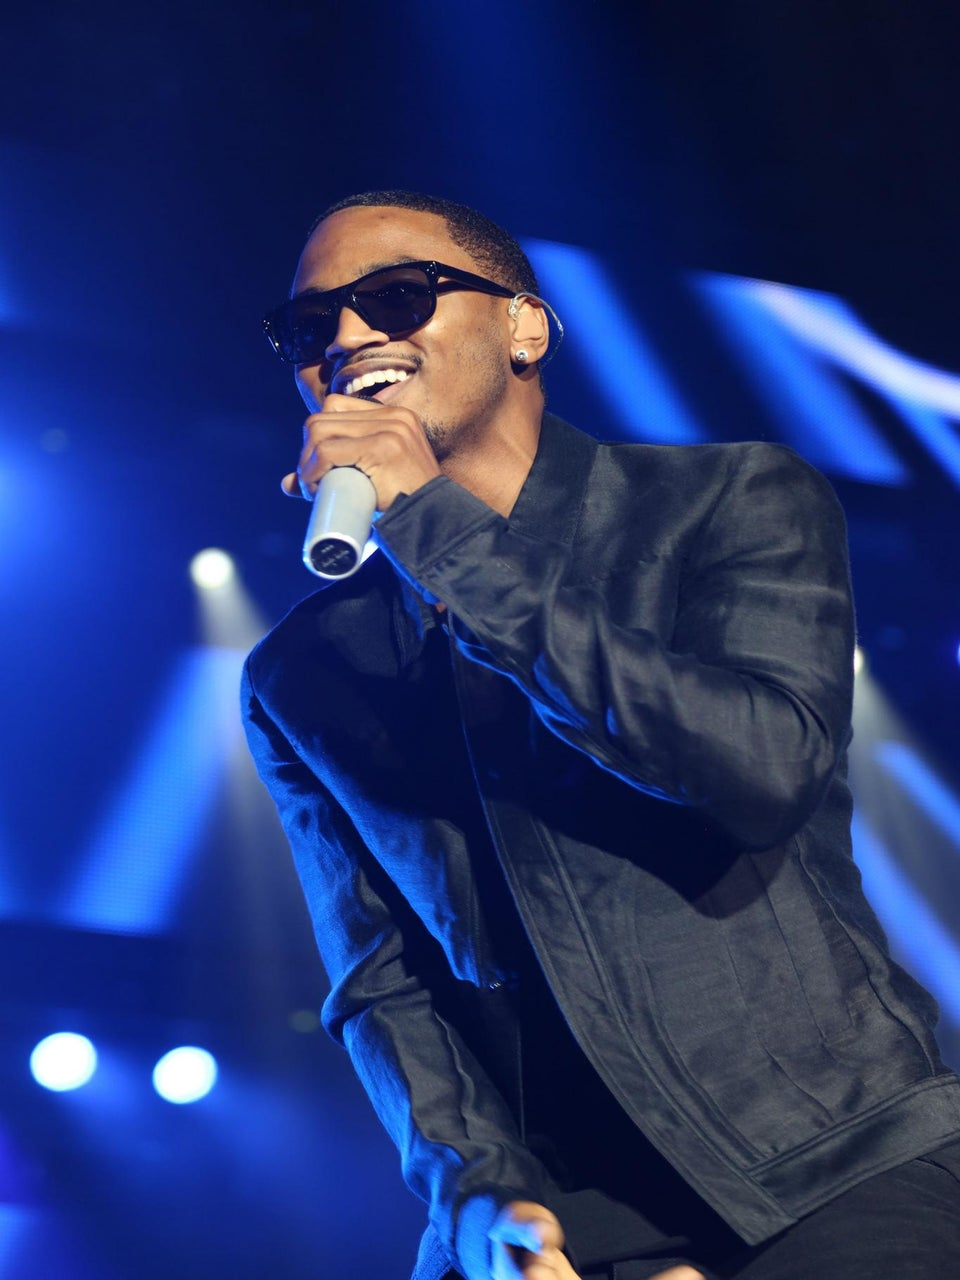 Whoa! Trey Songz Arrested AfterConcert Outburst, Charged With AssaultingCop